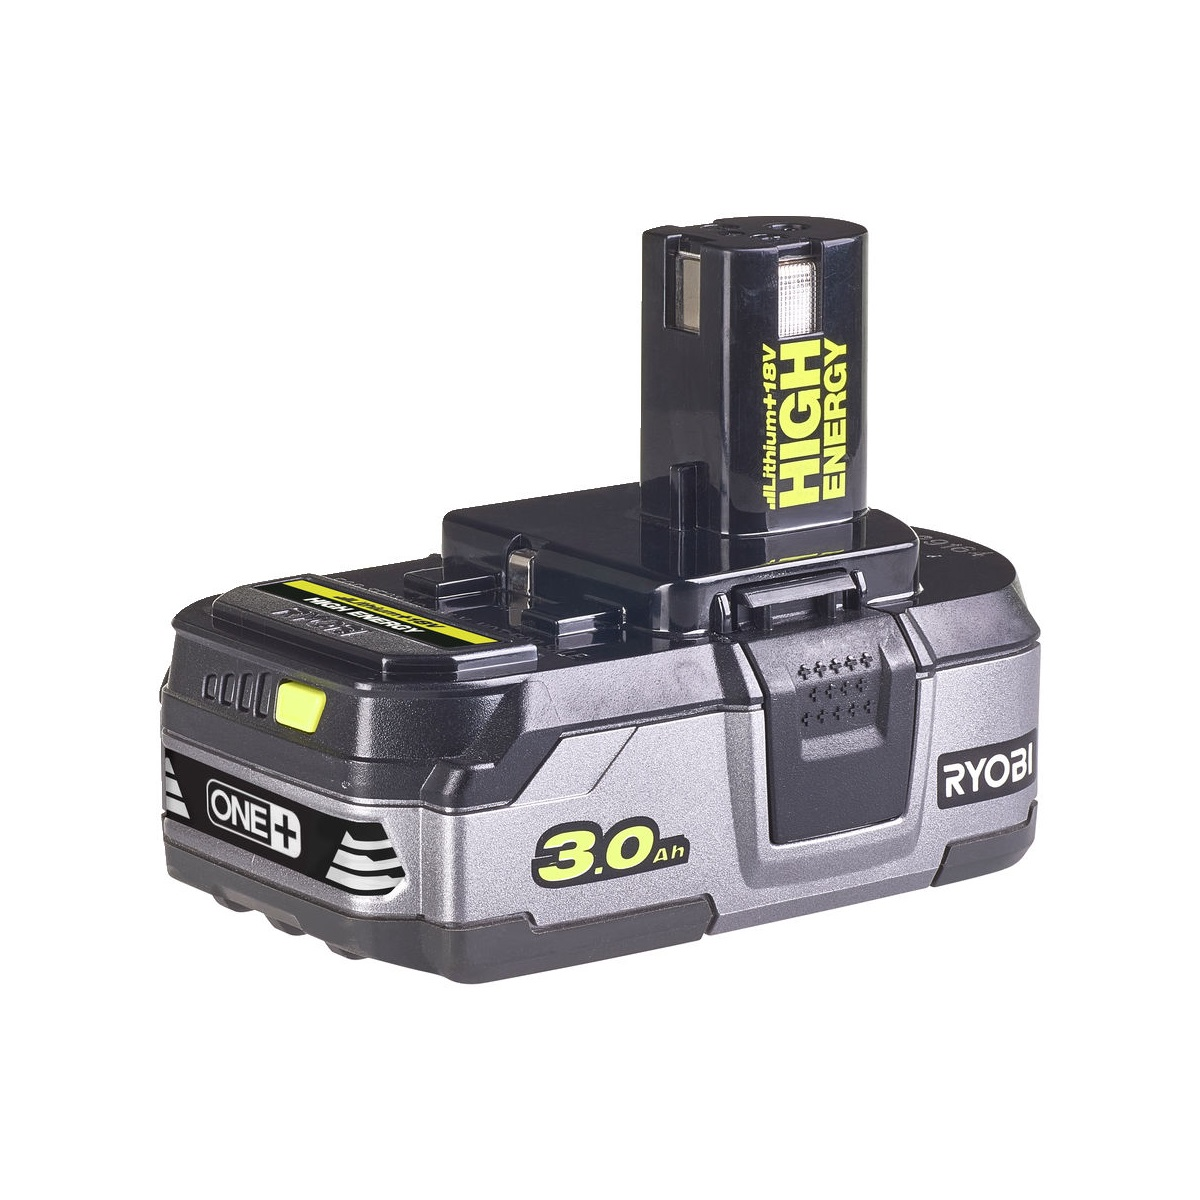 Ryobi RB18L30, 18 V lithium iontová HIGH ENERGY baterie 3 Ah ONE+